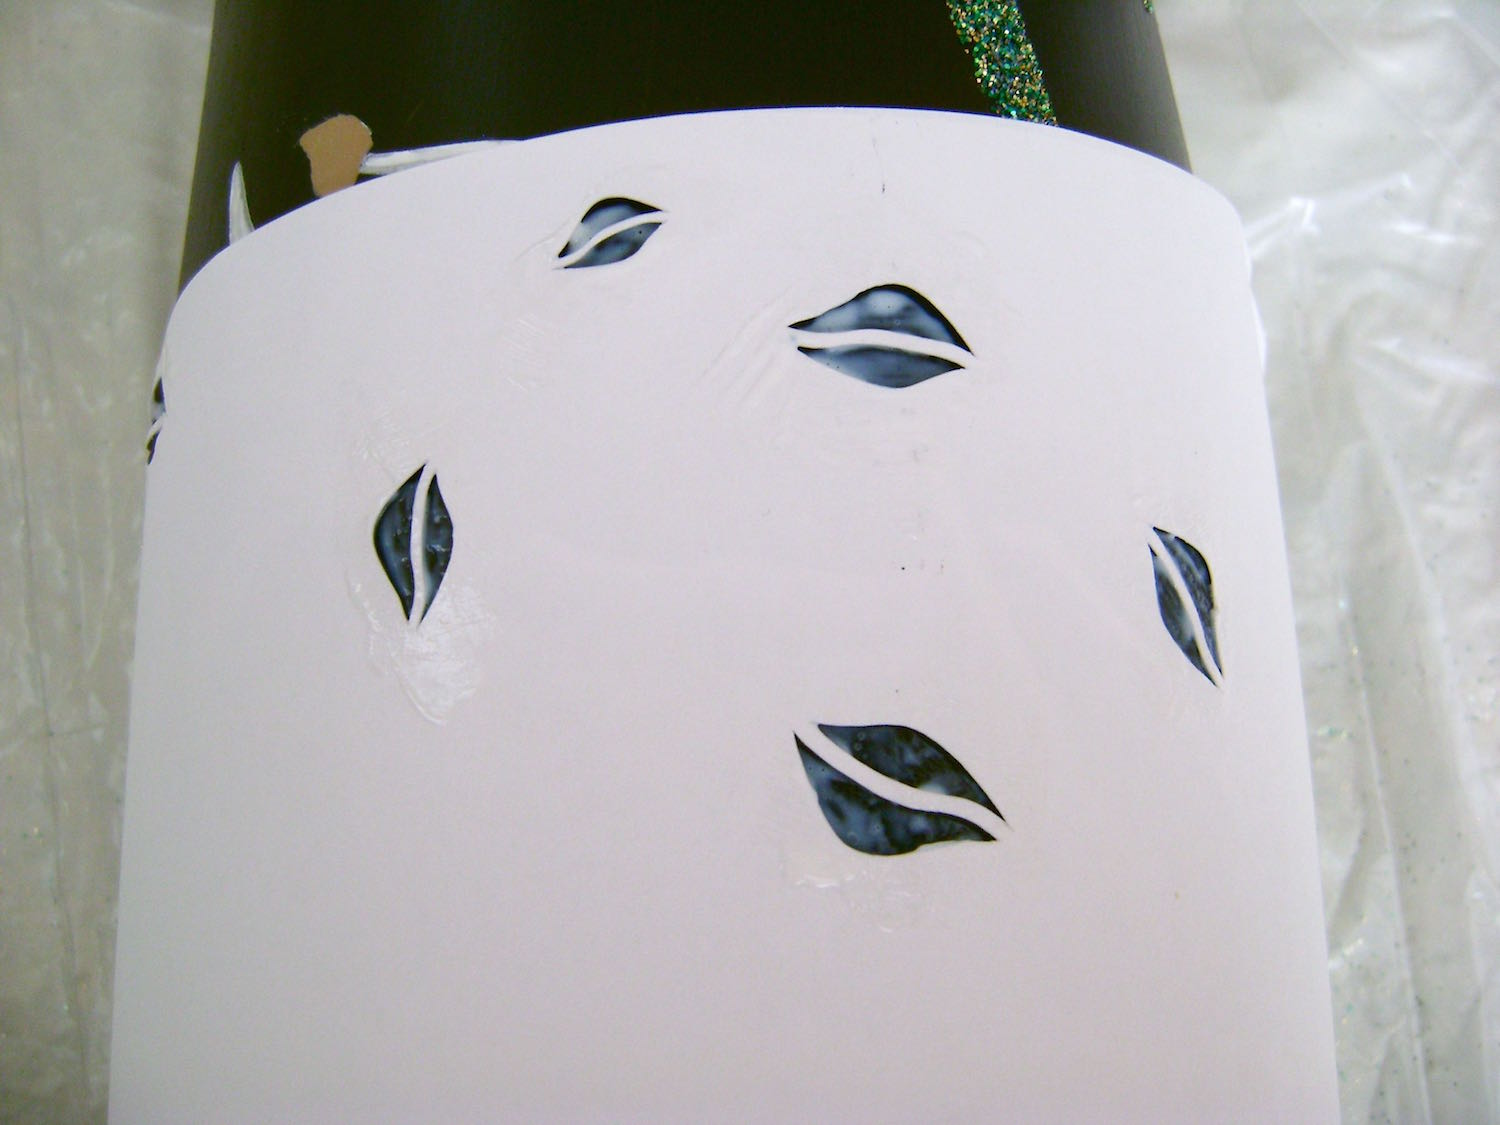 step 14 - Trim the leaf stencil and remove the backing on the side edges.  This will help to hold the stencil against the vase.  Don't allow the sticky back to come in contact with paint as it could lift paint when removed.  Apply Coat & Create to the leaf openings.